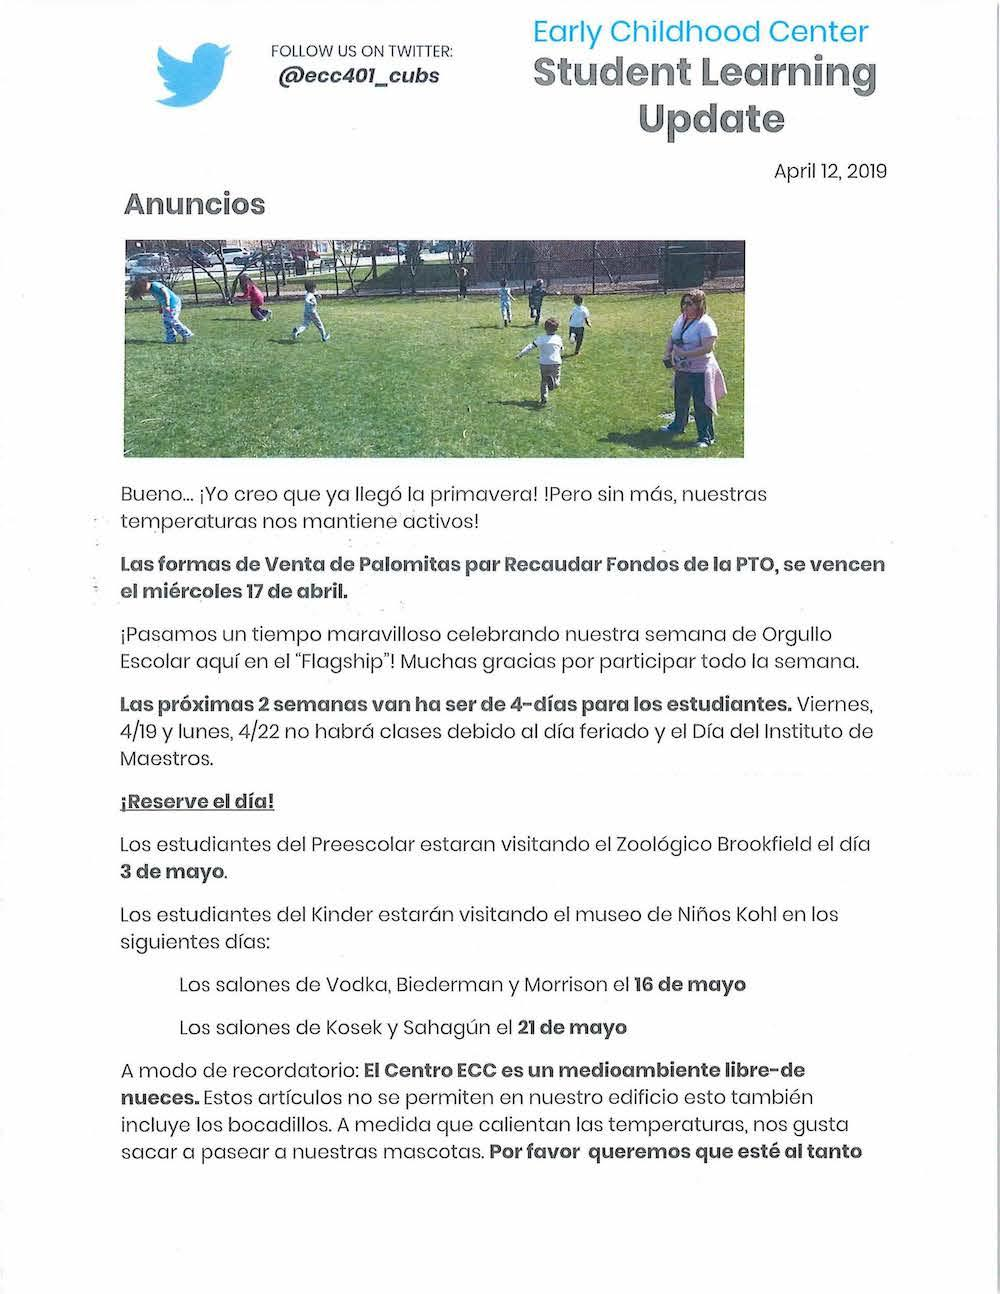 ECC Newsletter, April 12, 2019, Spanish, page 1